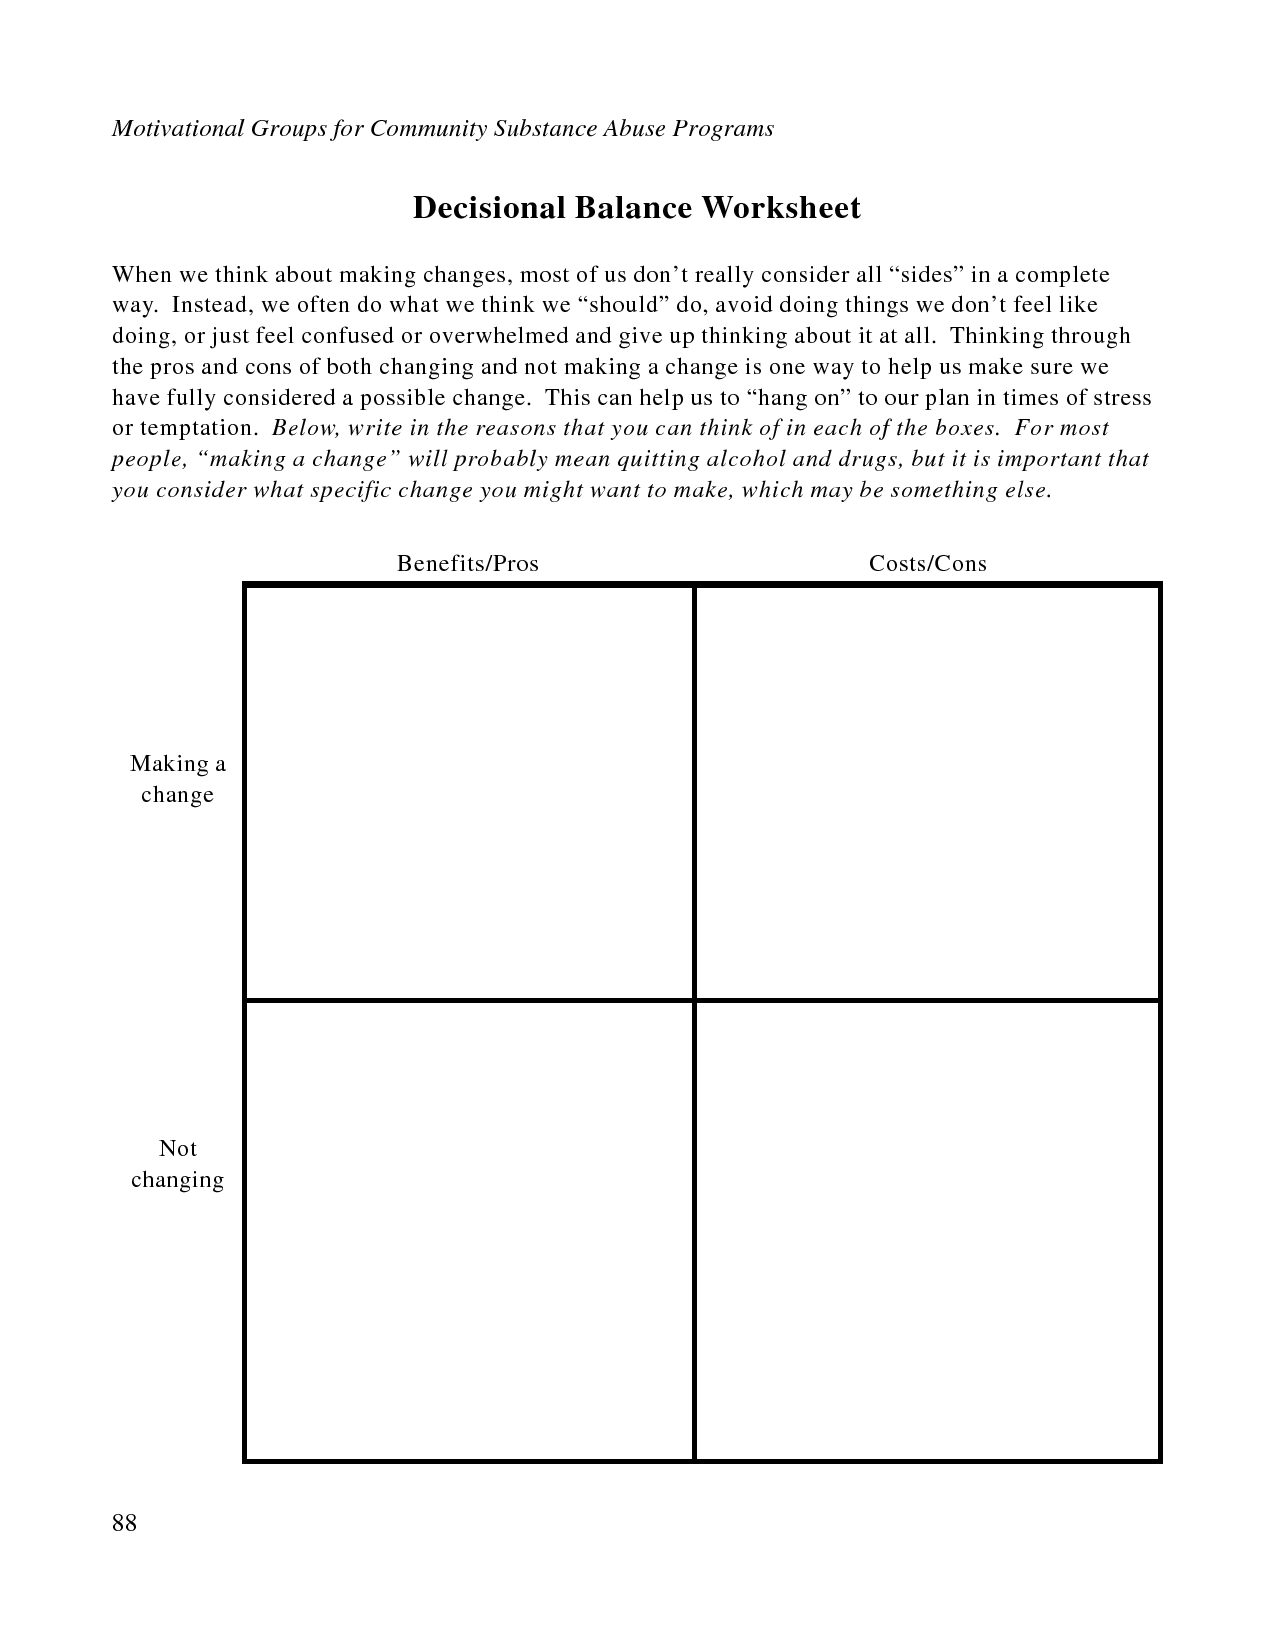 Free Printable Dbt Worksheets | Decisional Balance Worksheet - Pdf - Free Printable Recovery Games